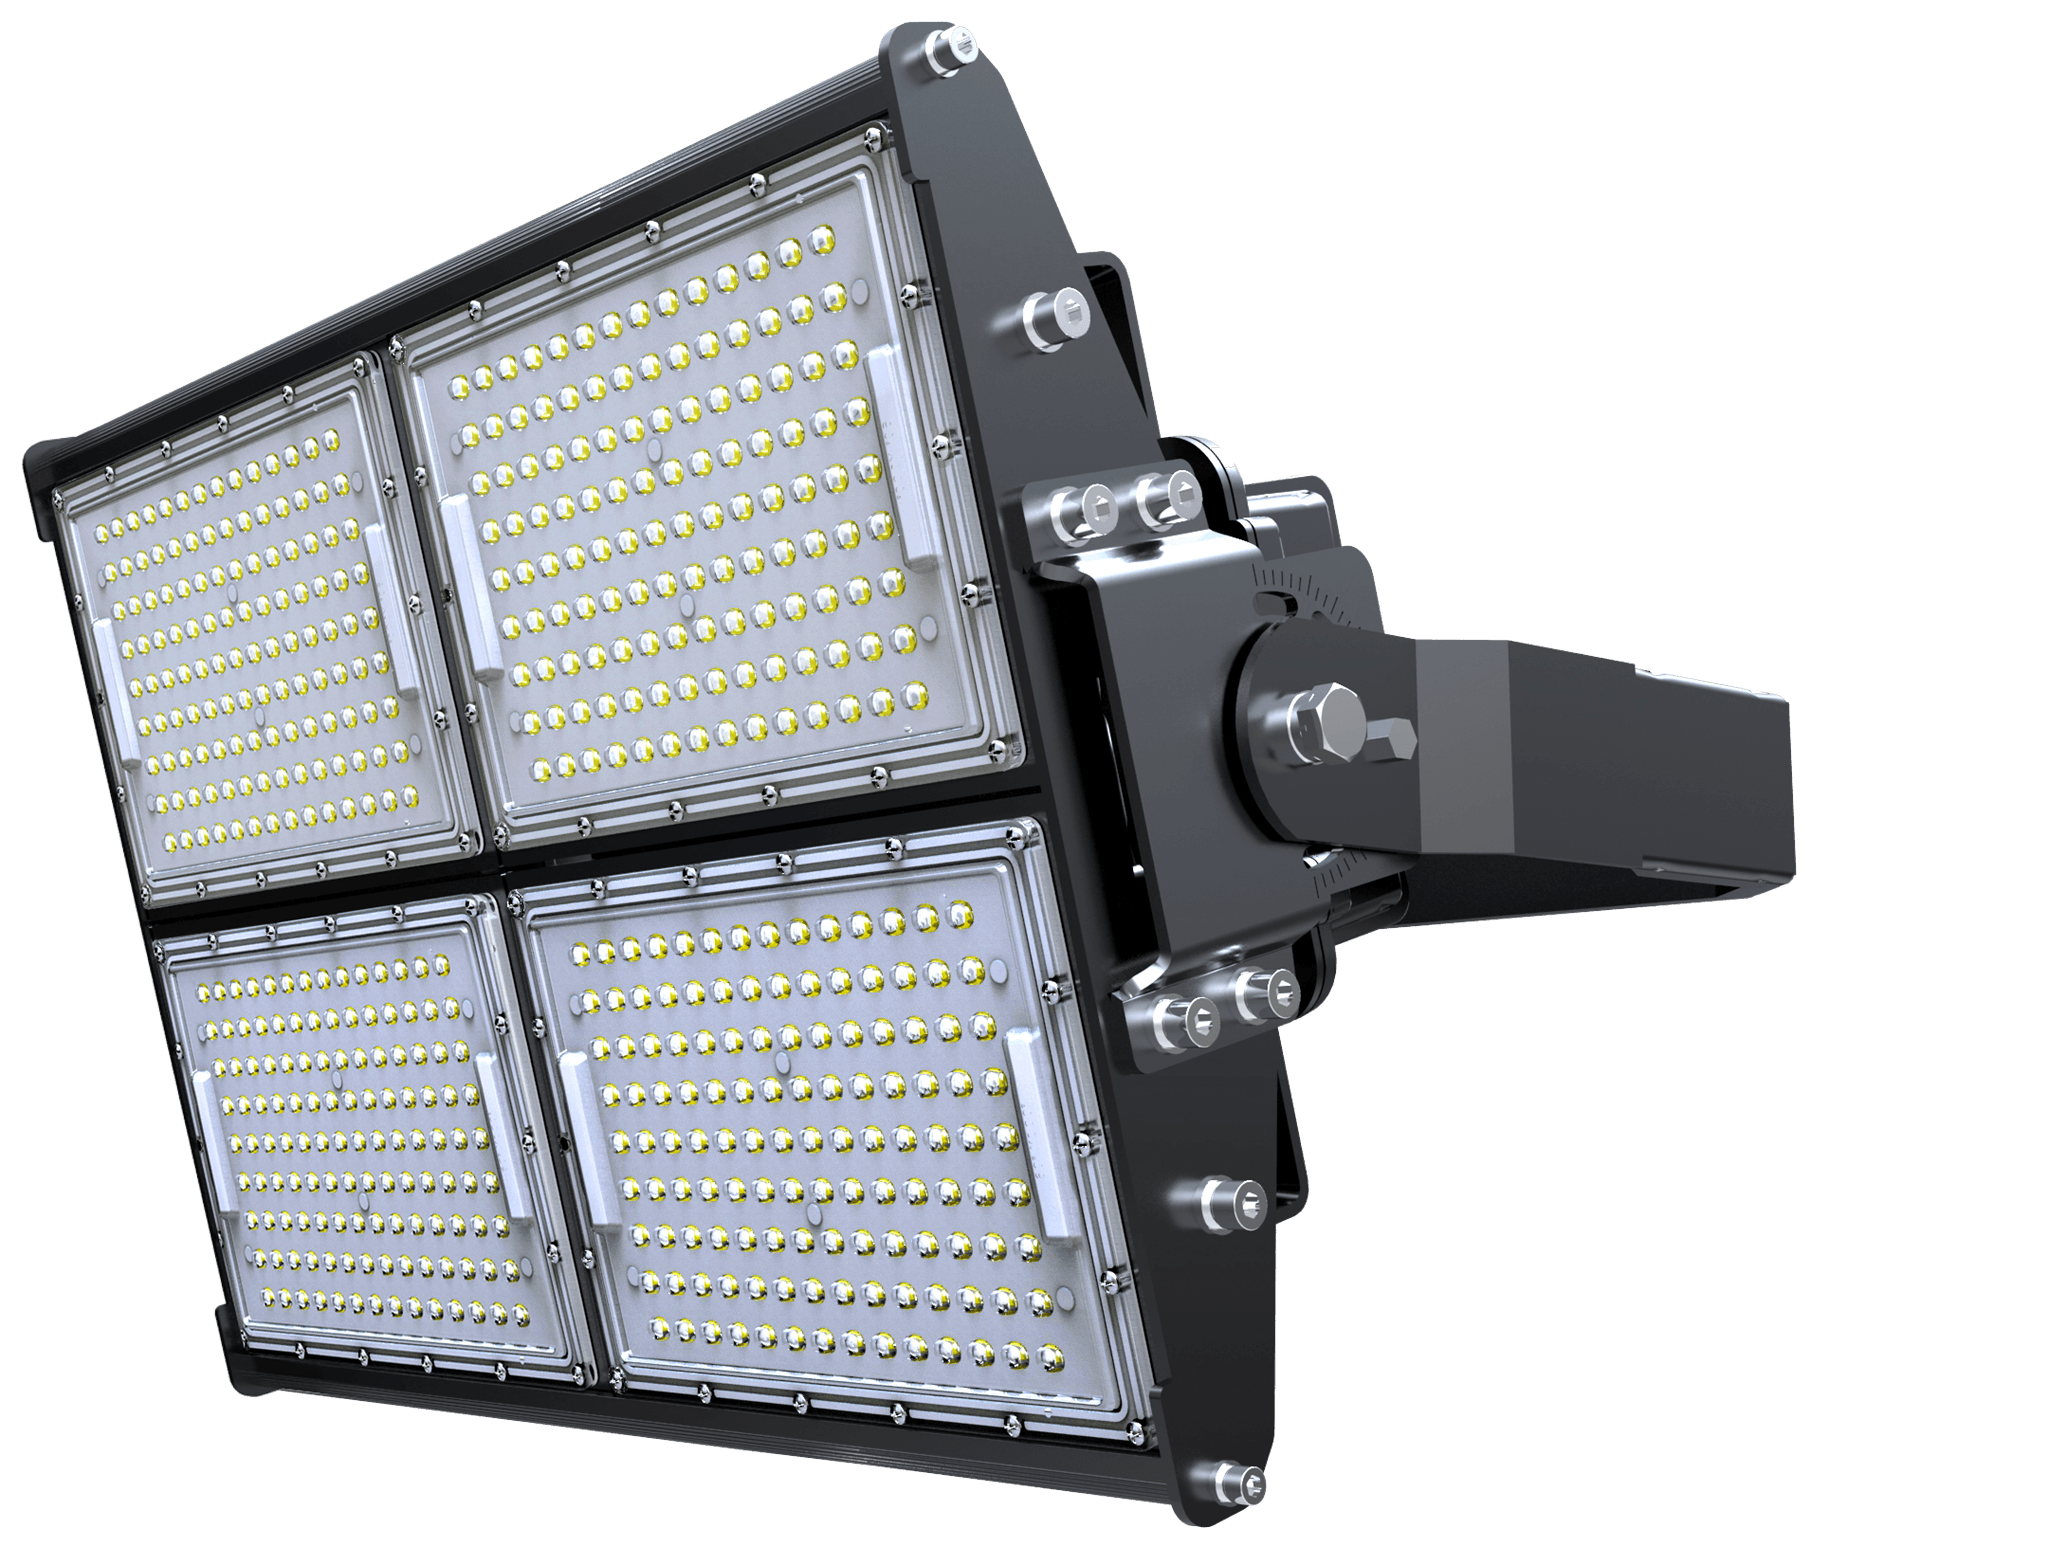 LED Stadium Light 480W, Super Bright Outdoor Flood Light, IP65 Waterproof